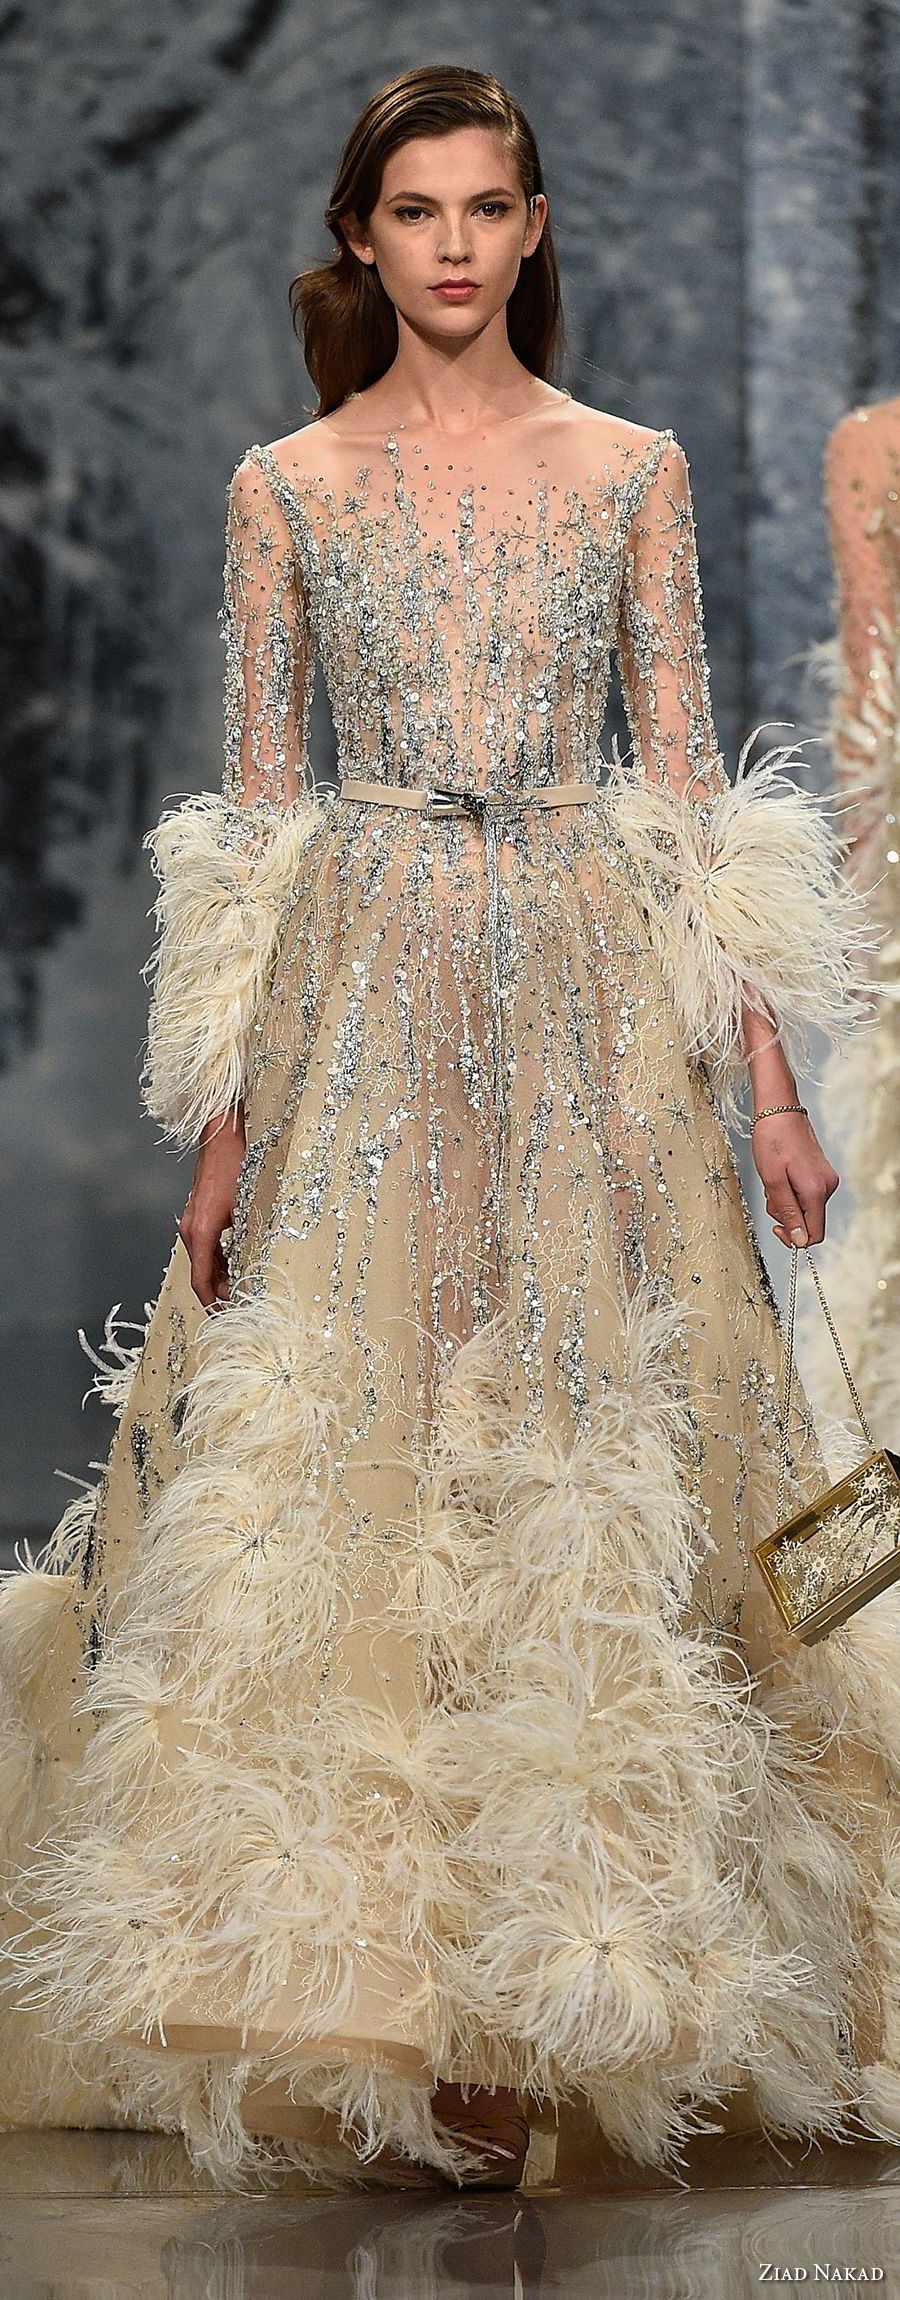 ziad nakad couture fall 2017 long sleeves illusion jewel full beaded feathers embellishment sophiscated couture a  line wedding dress sheer back chapel train (26) mv